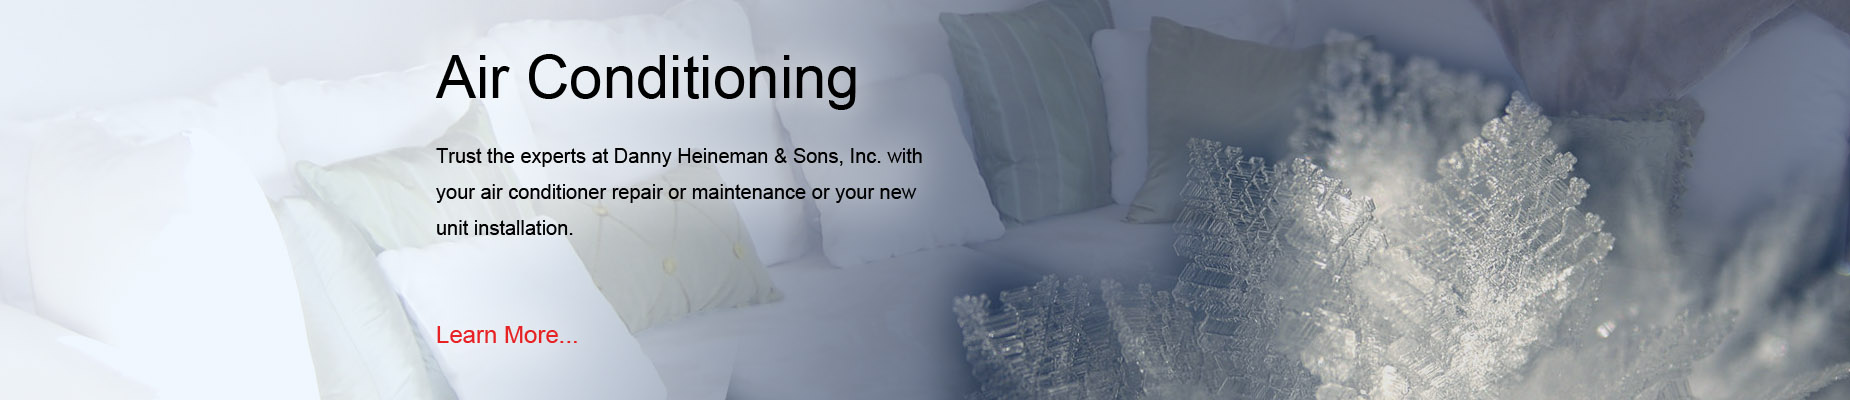 For Air Conditioning repair service in Springville NY, call Danny Heineman!